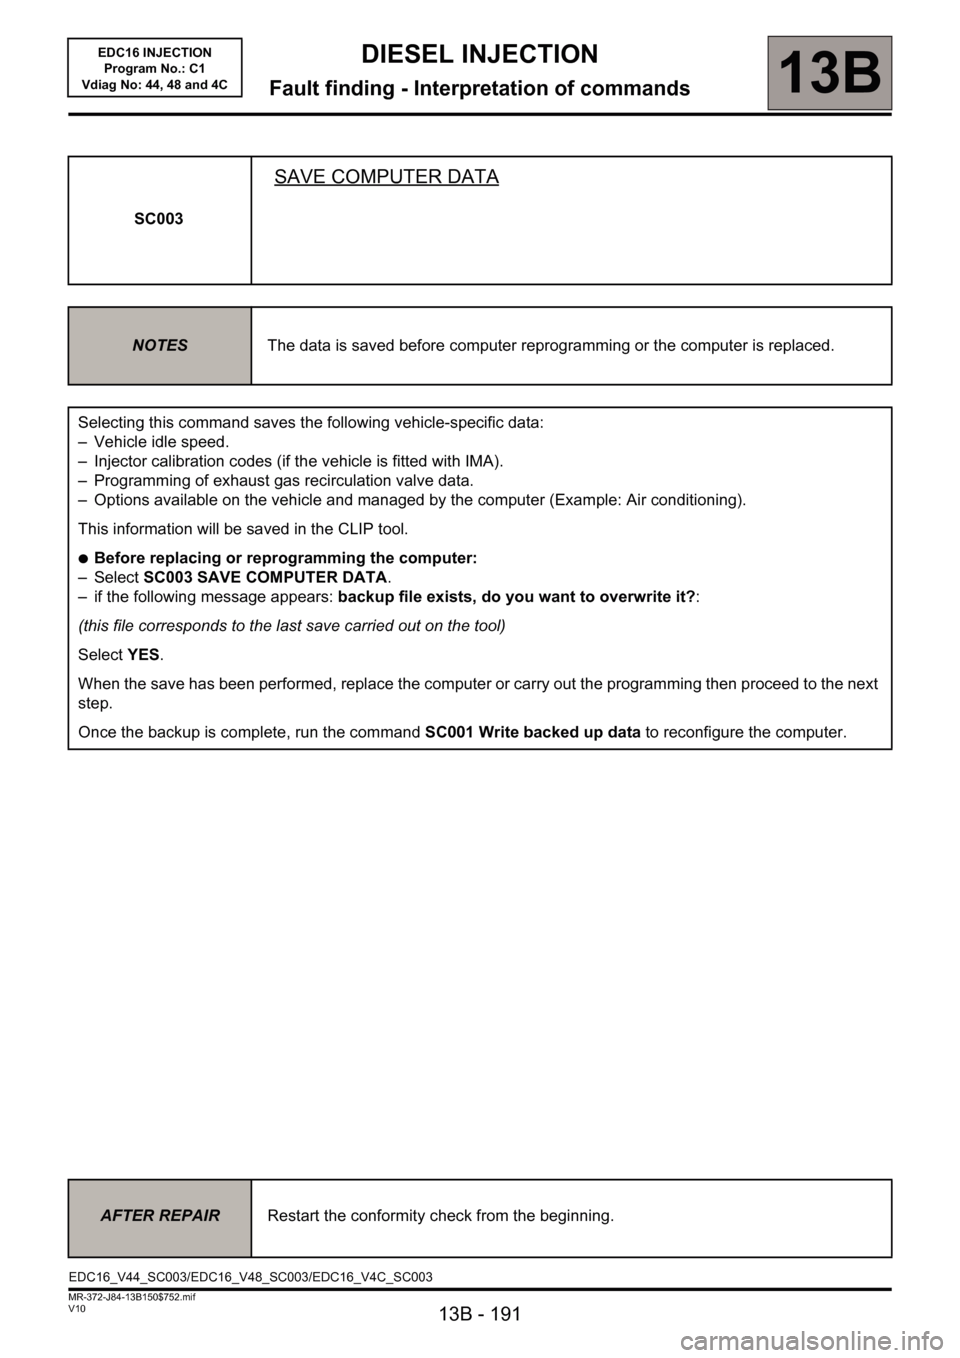 RENAULT SCENIC 2011 J95 / 3.G Engine And Peripherals EDC16 Injection Workshop Manual, Page 191